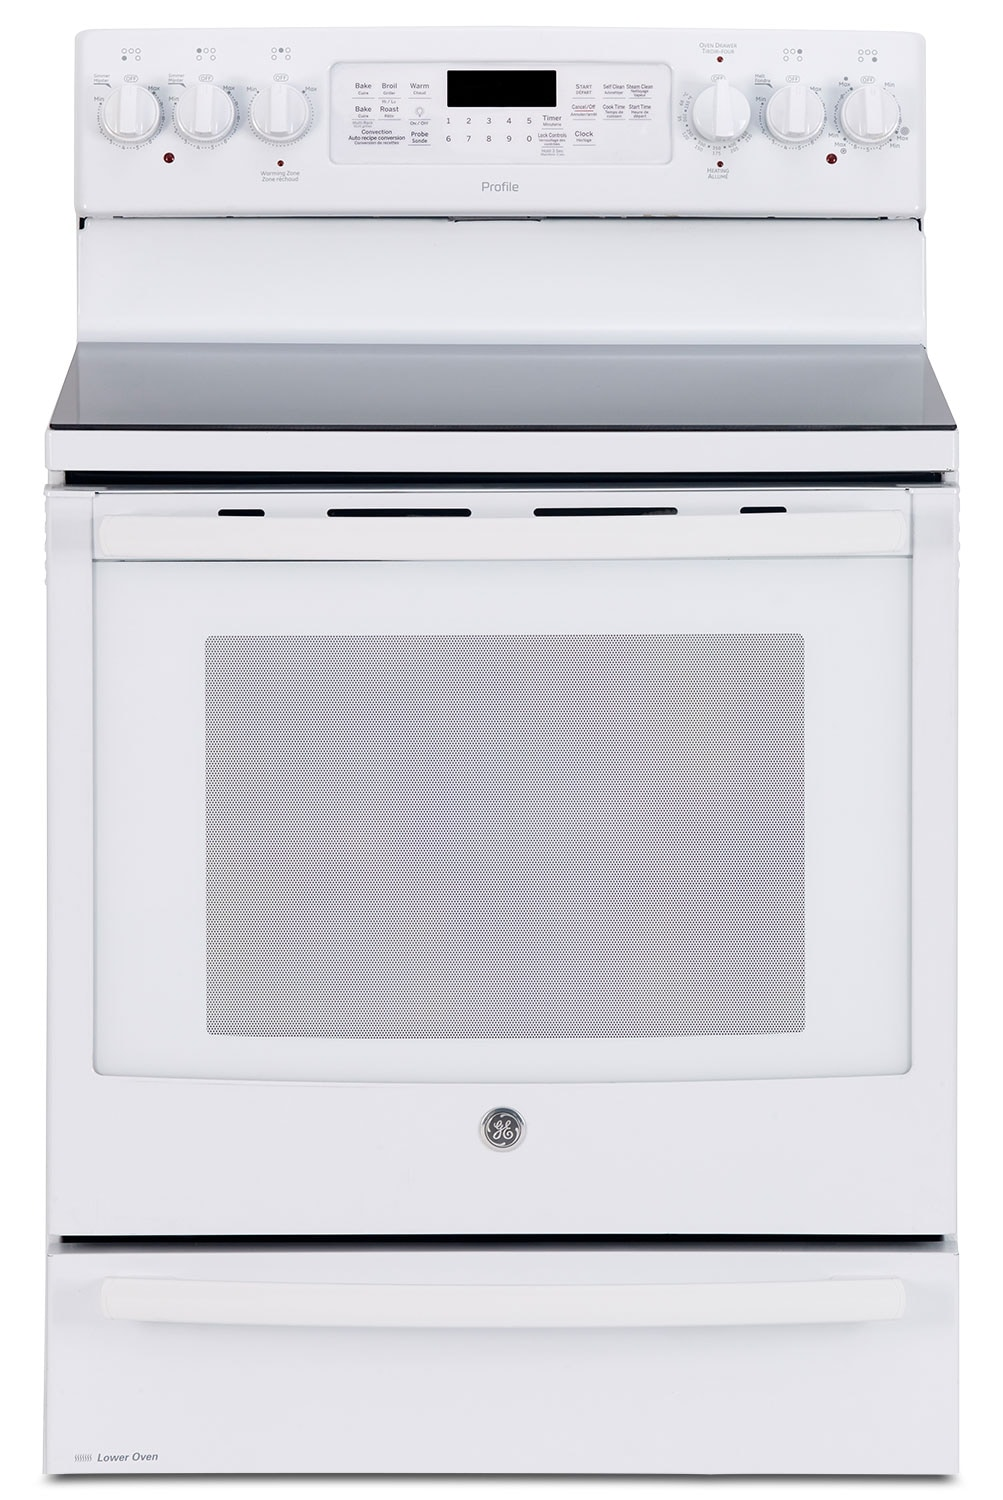 Cooking Products - GE 6.2 Cu. Ft. Freestanding Electric Range with Baking Drawer – PCB985DKWW